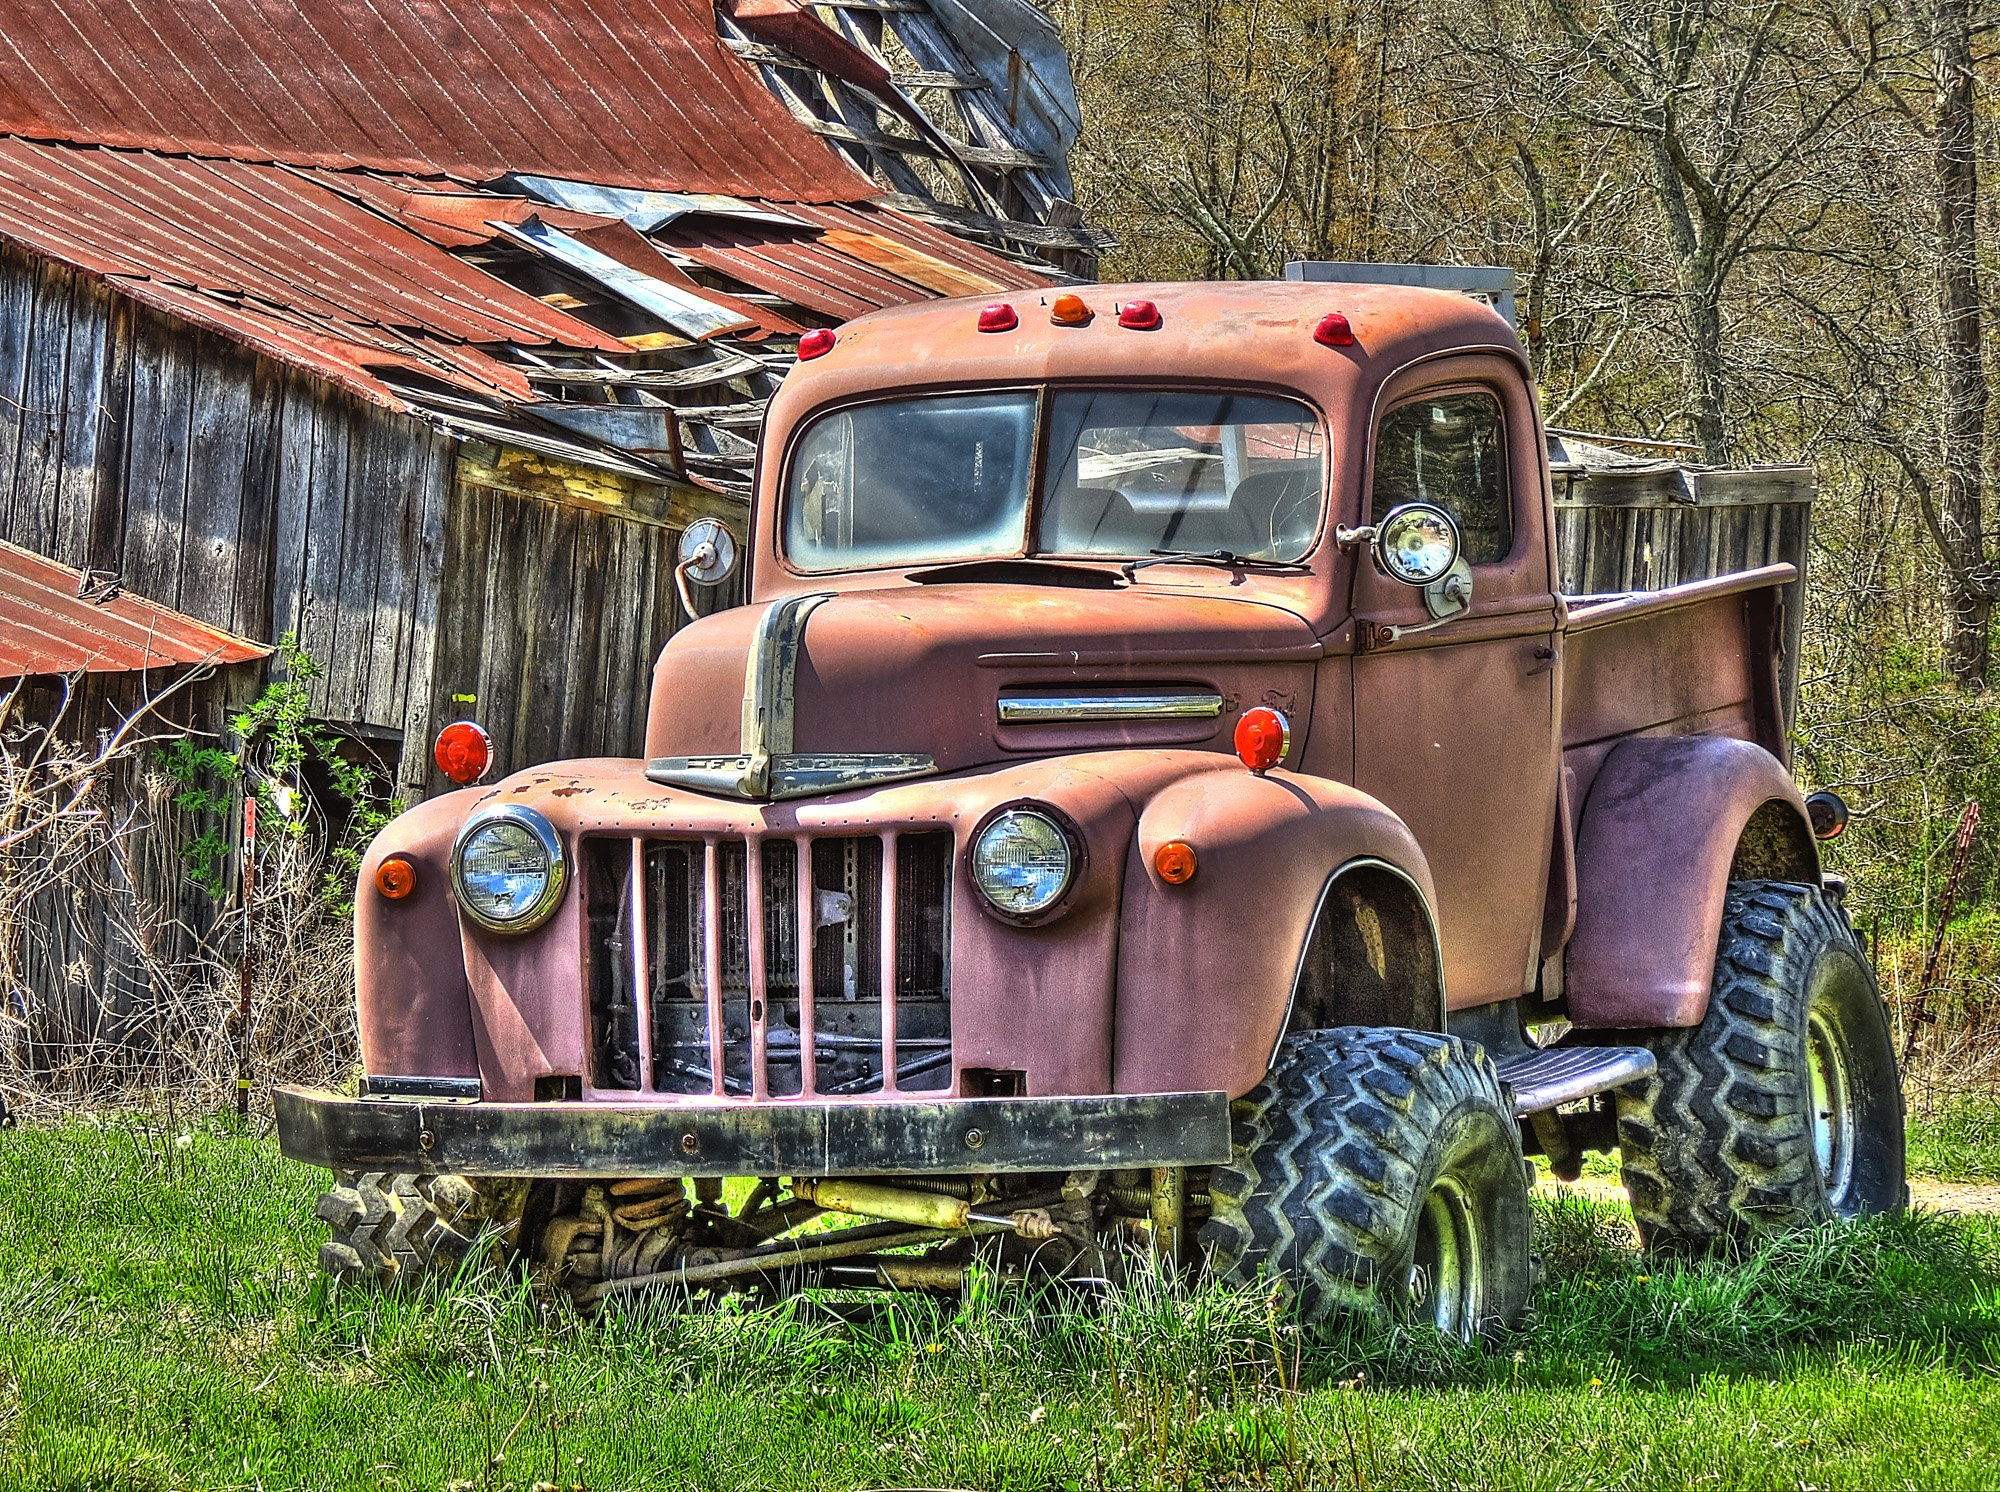 Old Rusty Ford Trucks Rusty old truck 1940s ford 2000x1492